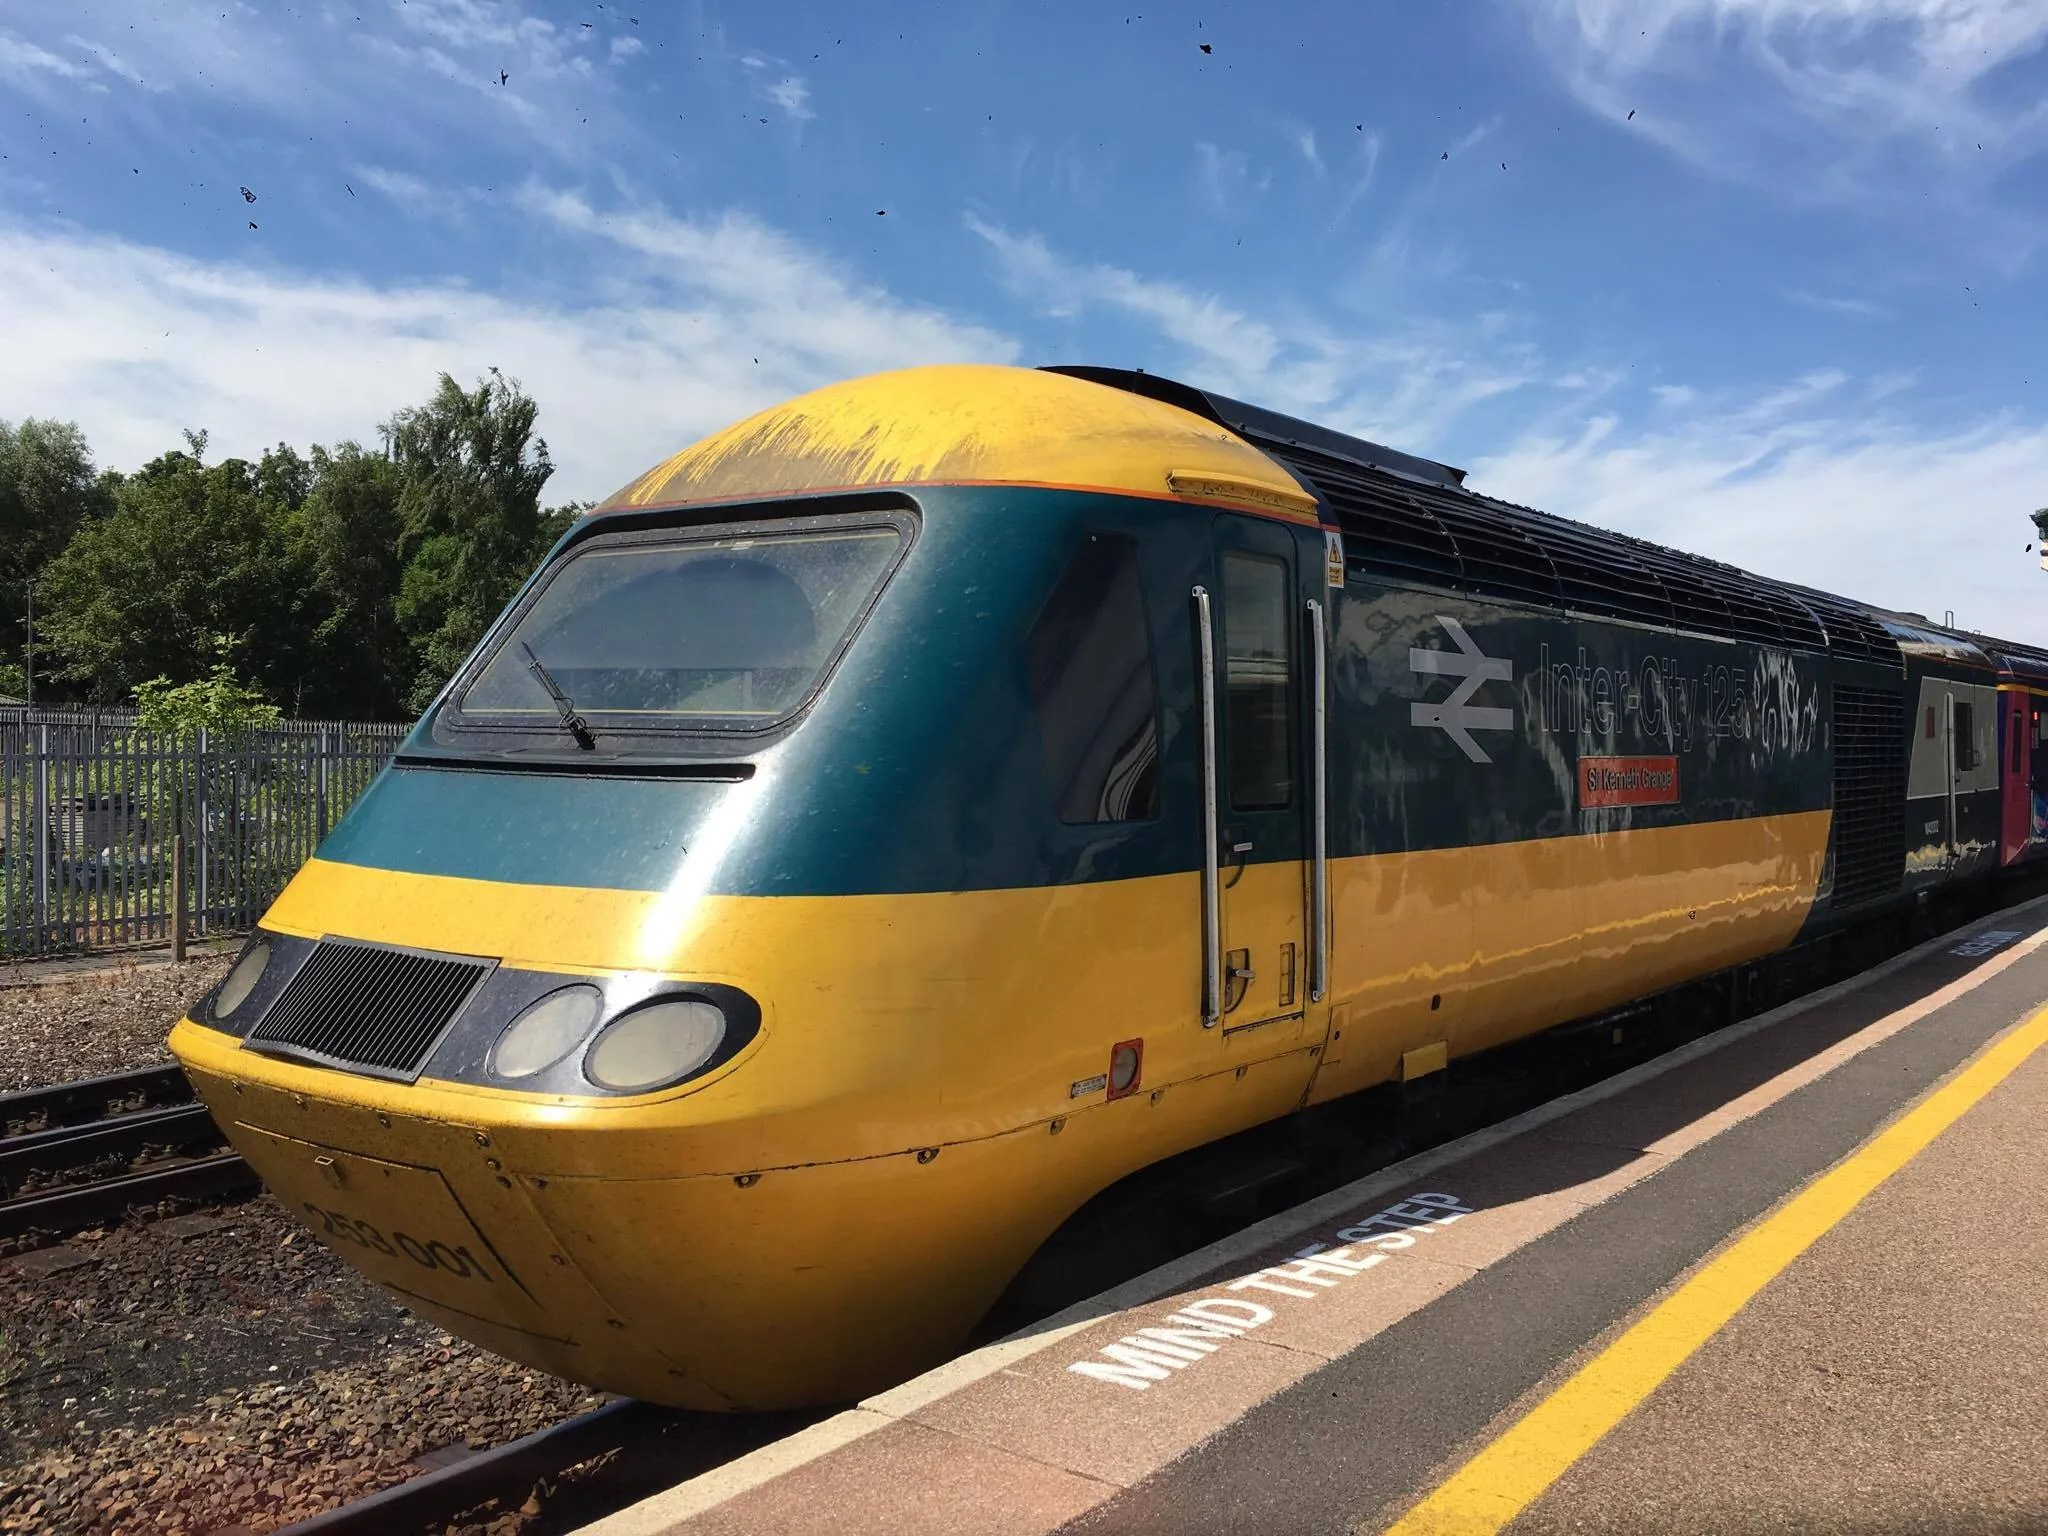 HST in the original blue and yellow livery